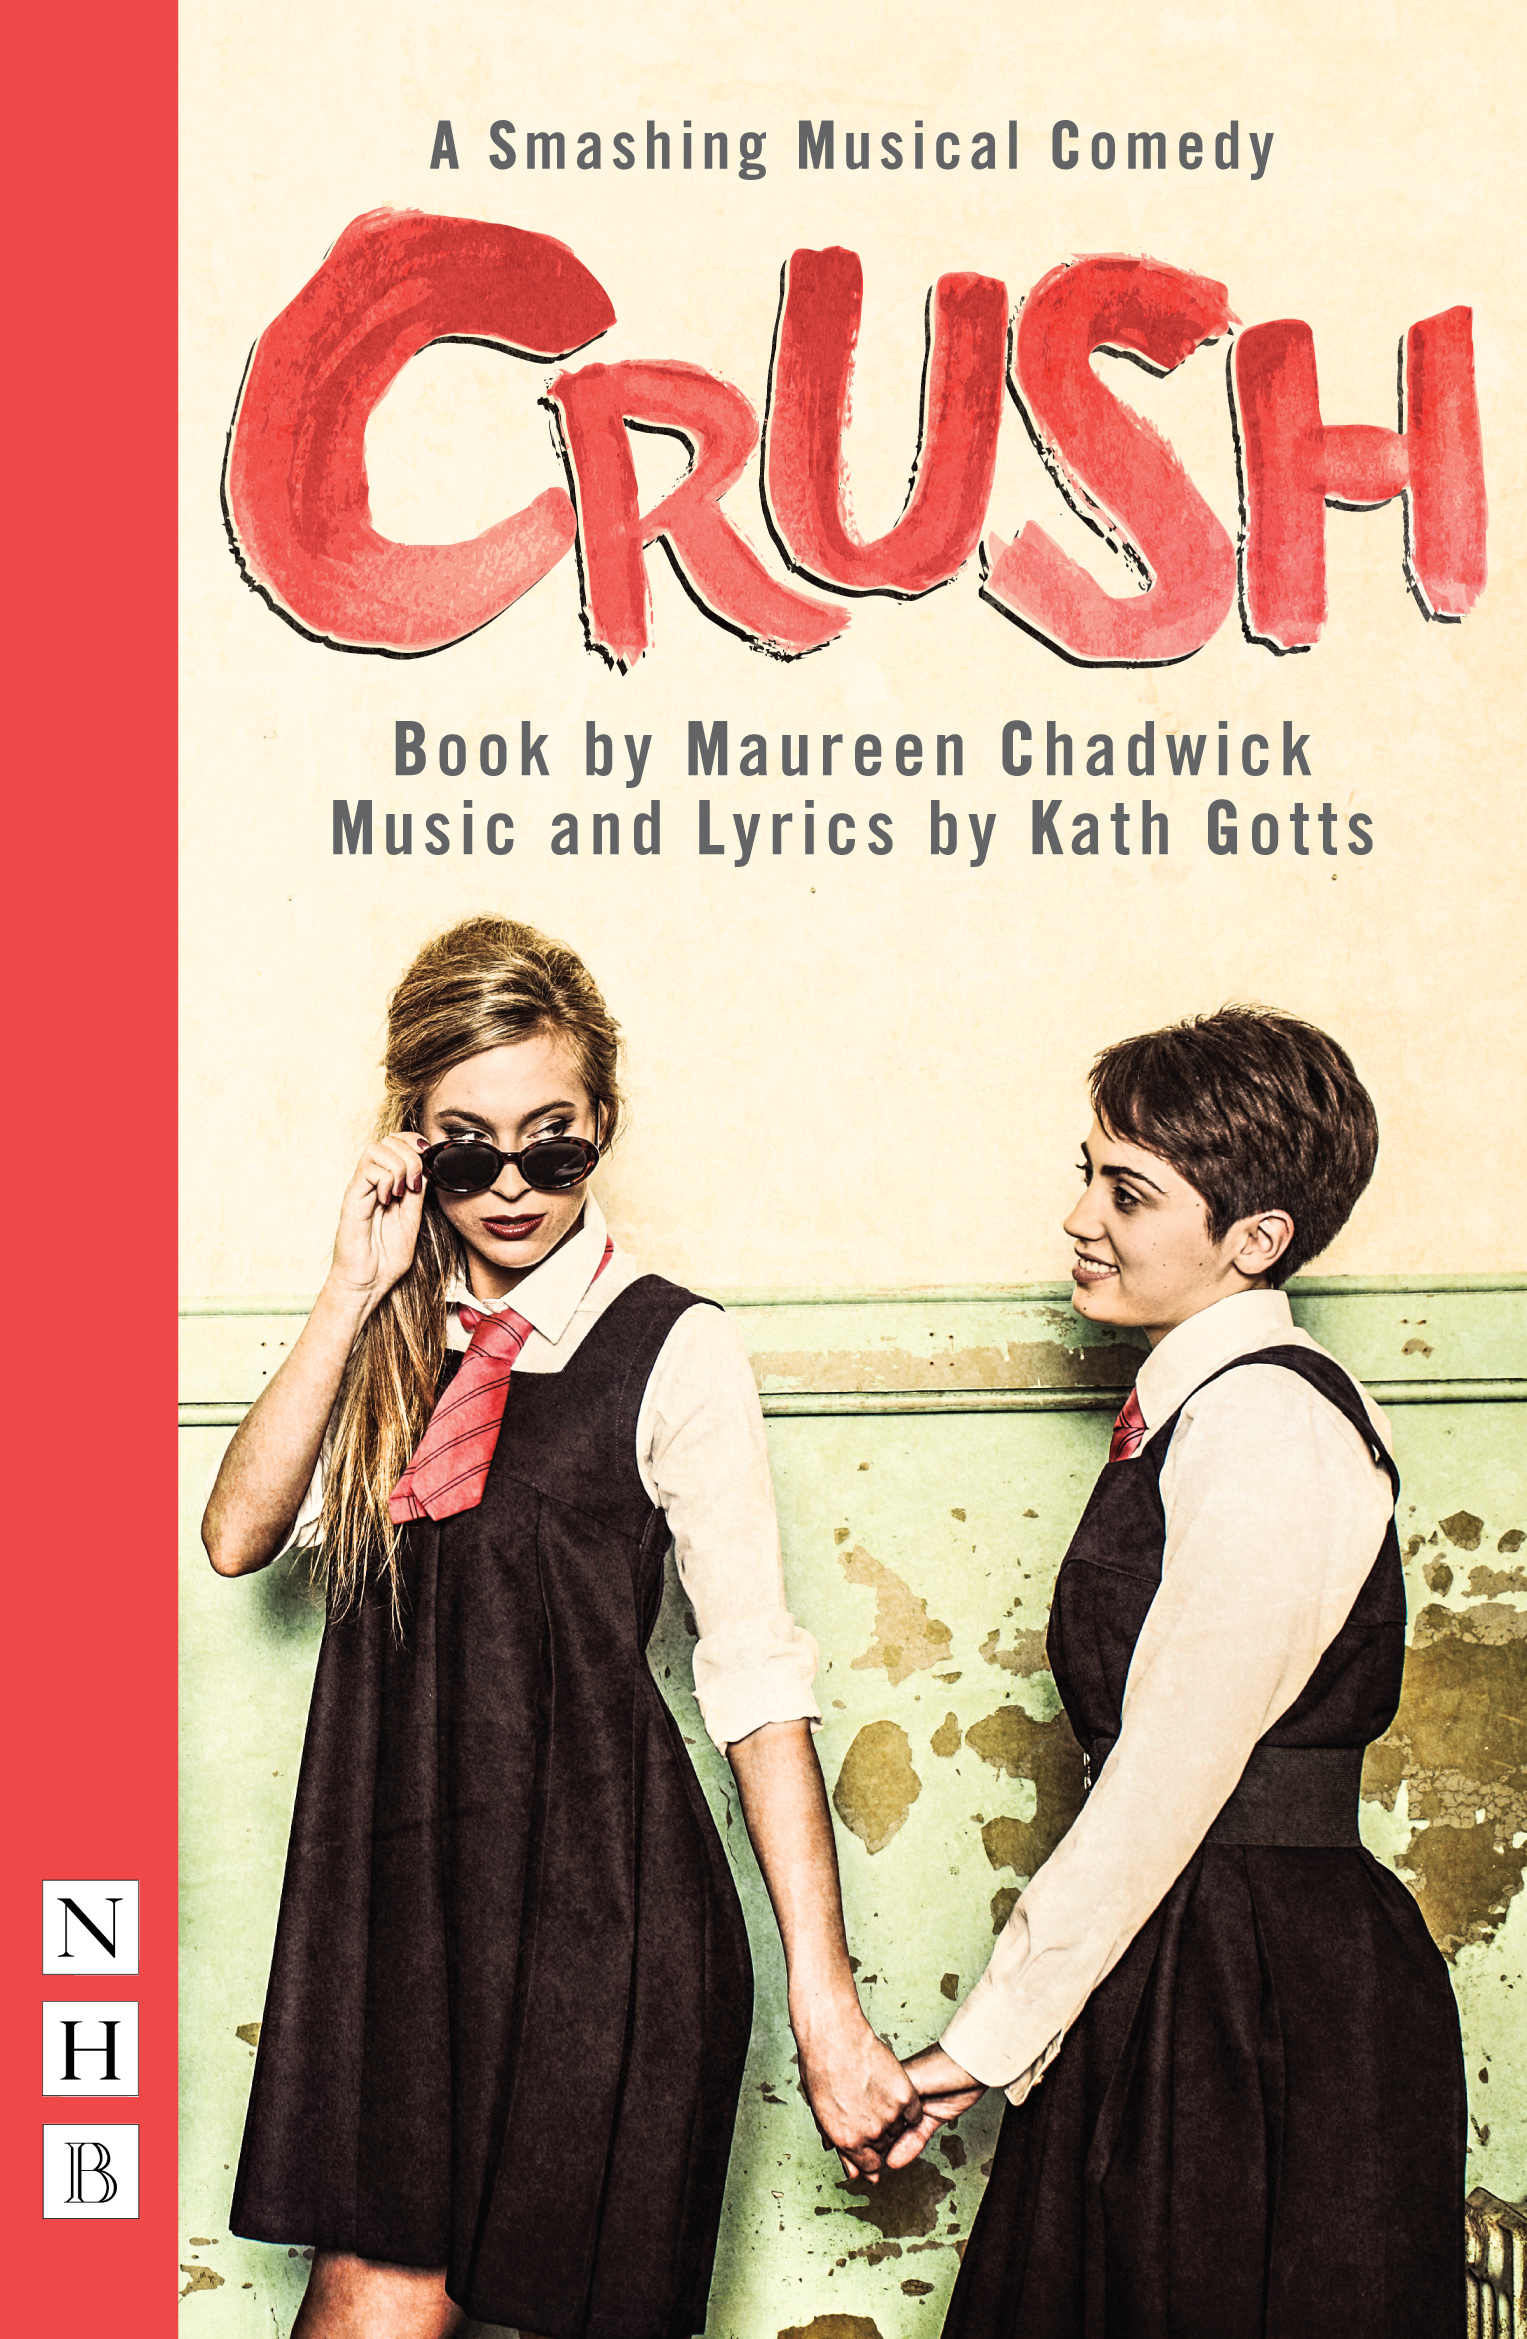 Crush: The Musical